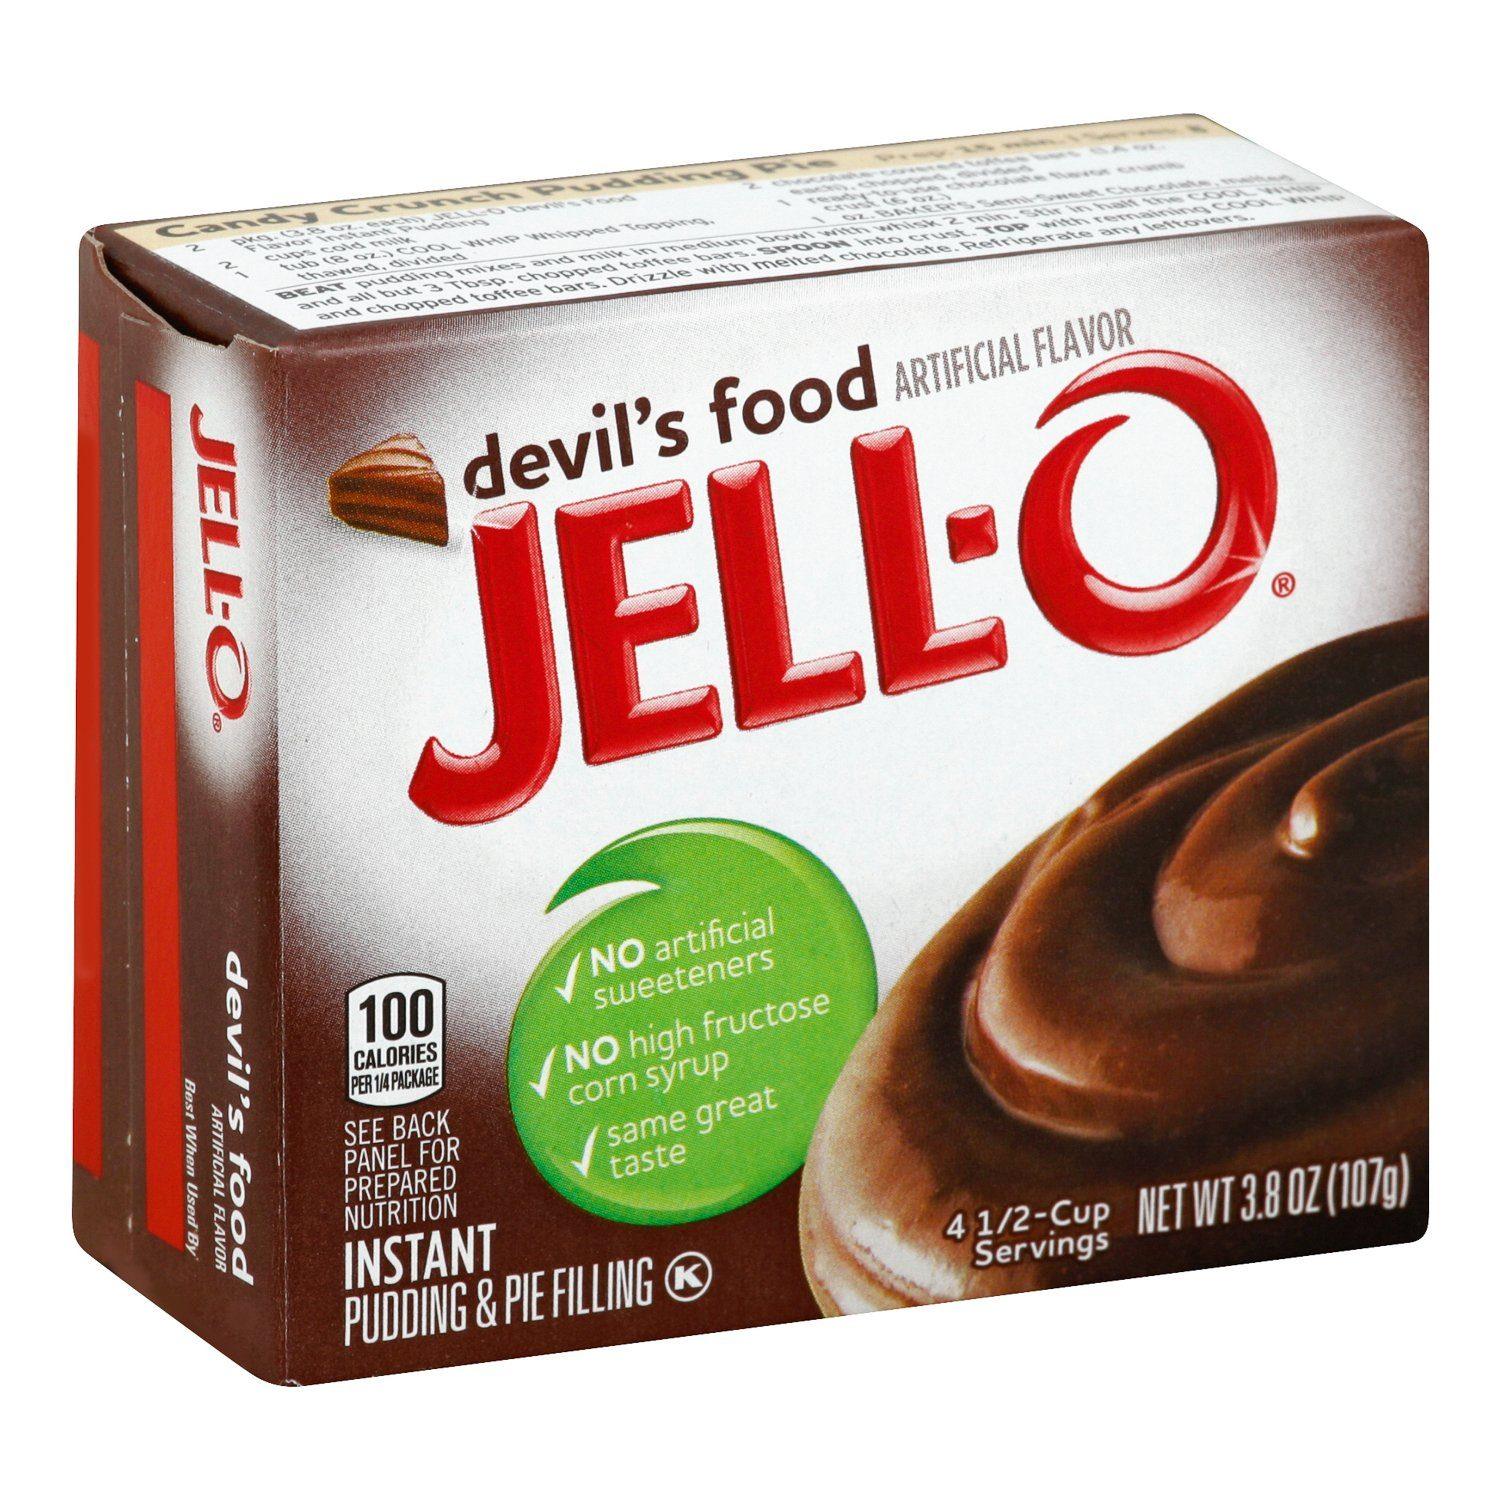 Jell-O Instant Pudding & Pie Filling Mixes Jell-O Devil's Food 3.4 Ounce